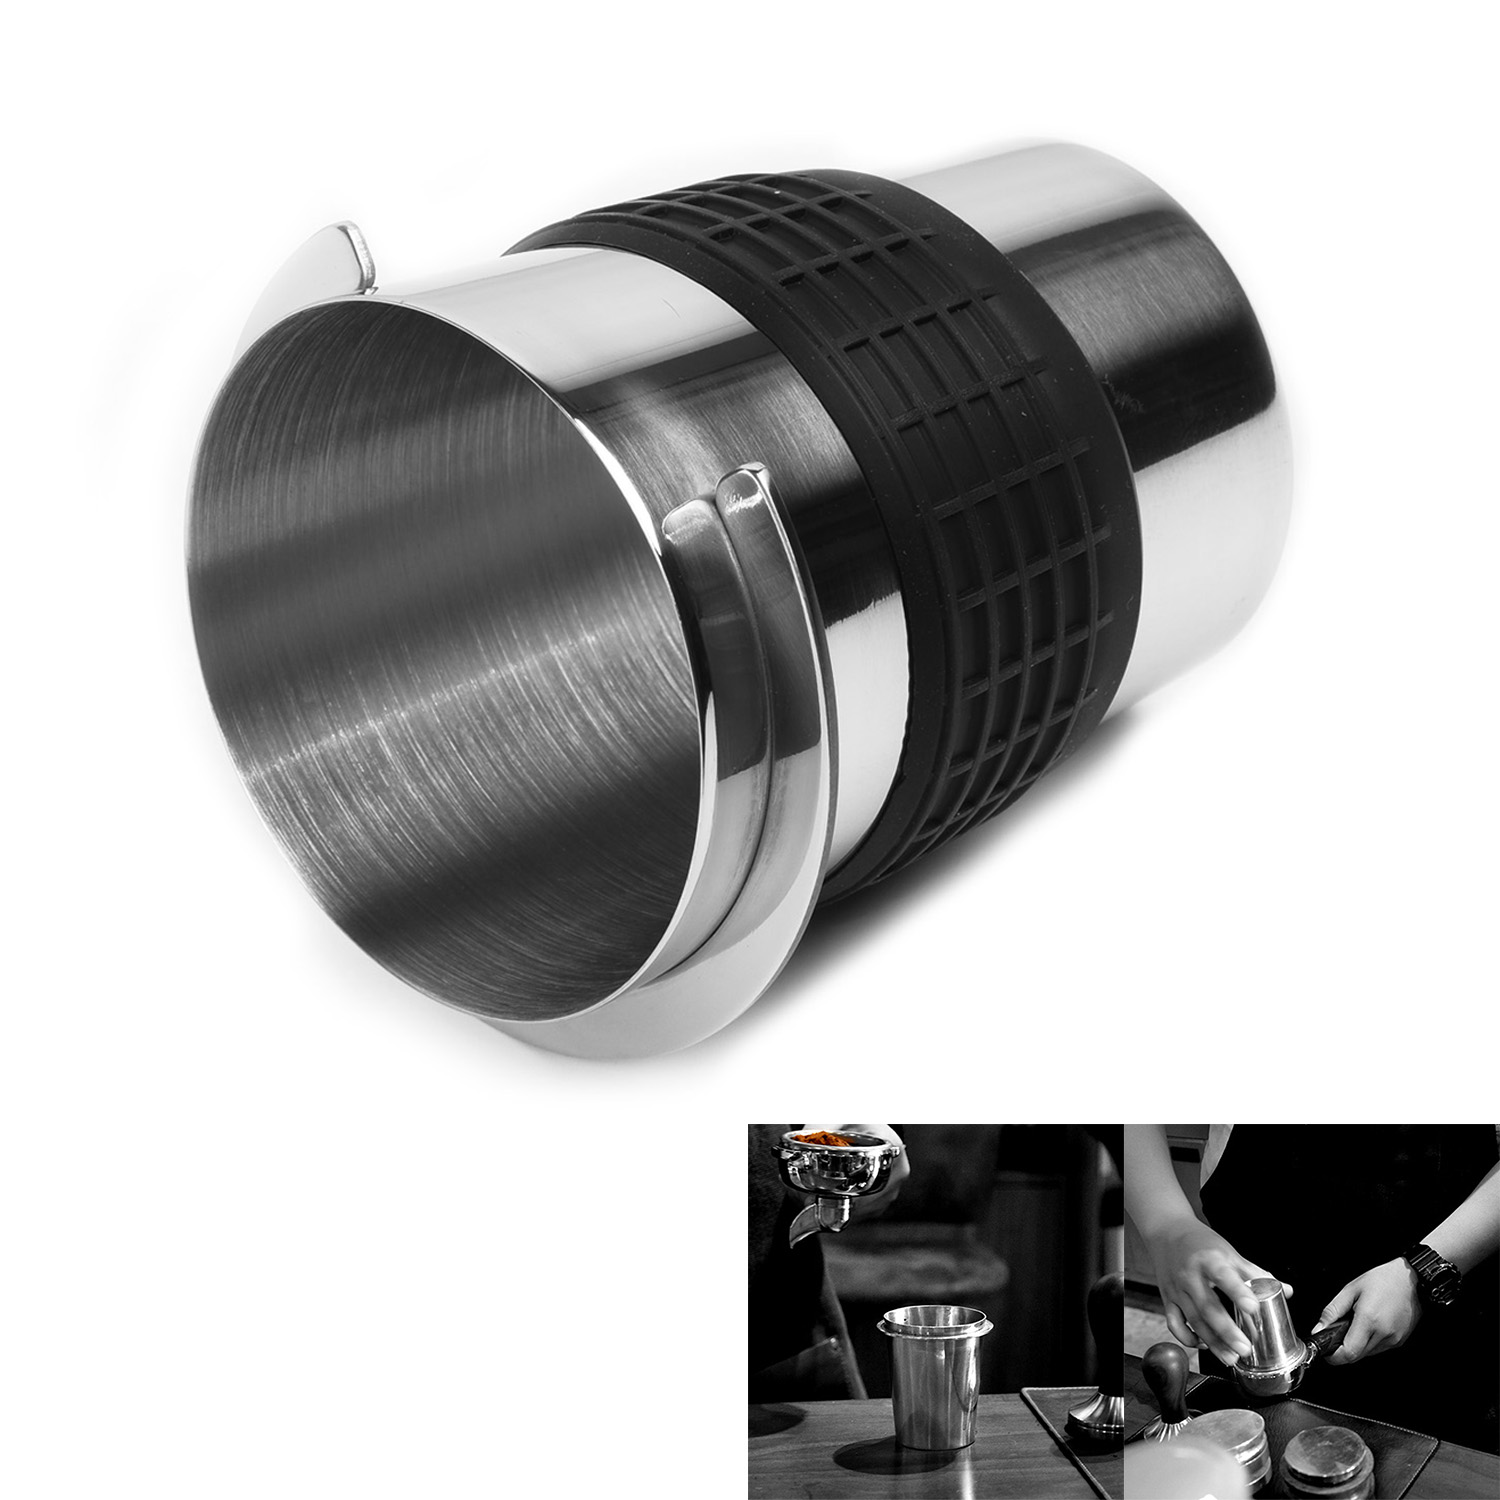 1pc Silver Stainless Steel Coffee Powder Precision Dosing Cup For EK43 Grinder Durable Cups Home Kitchen Supplies